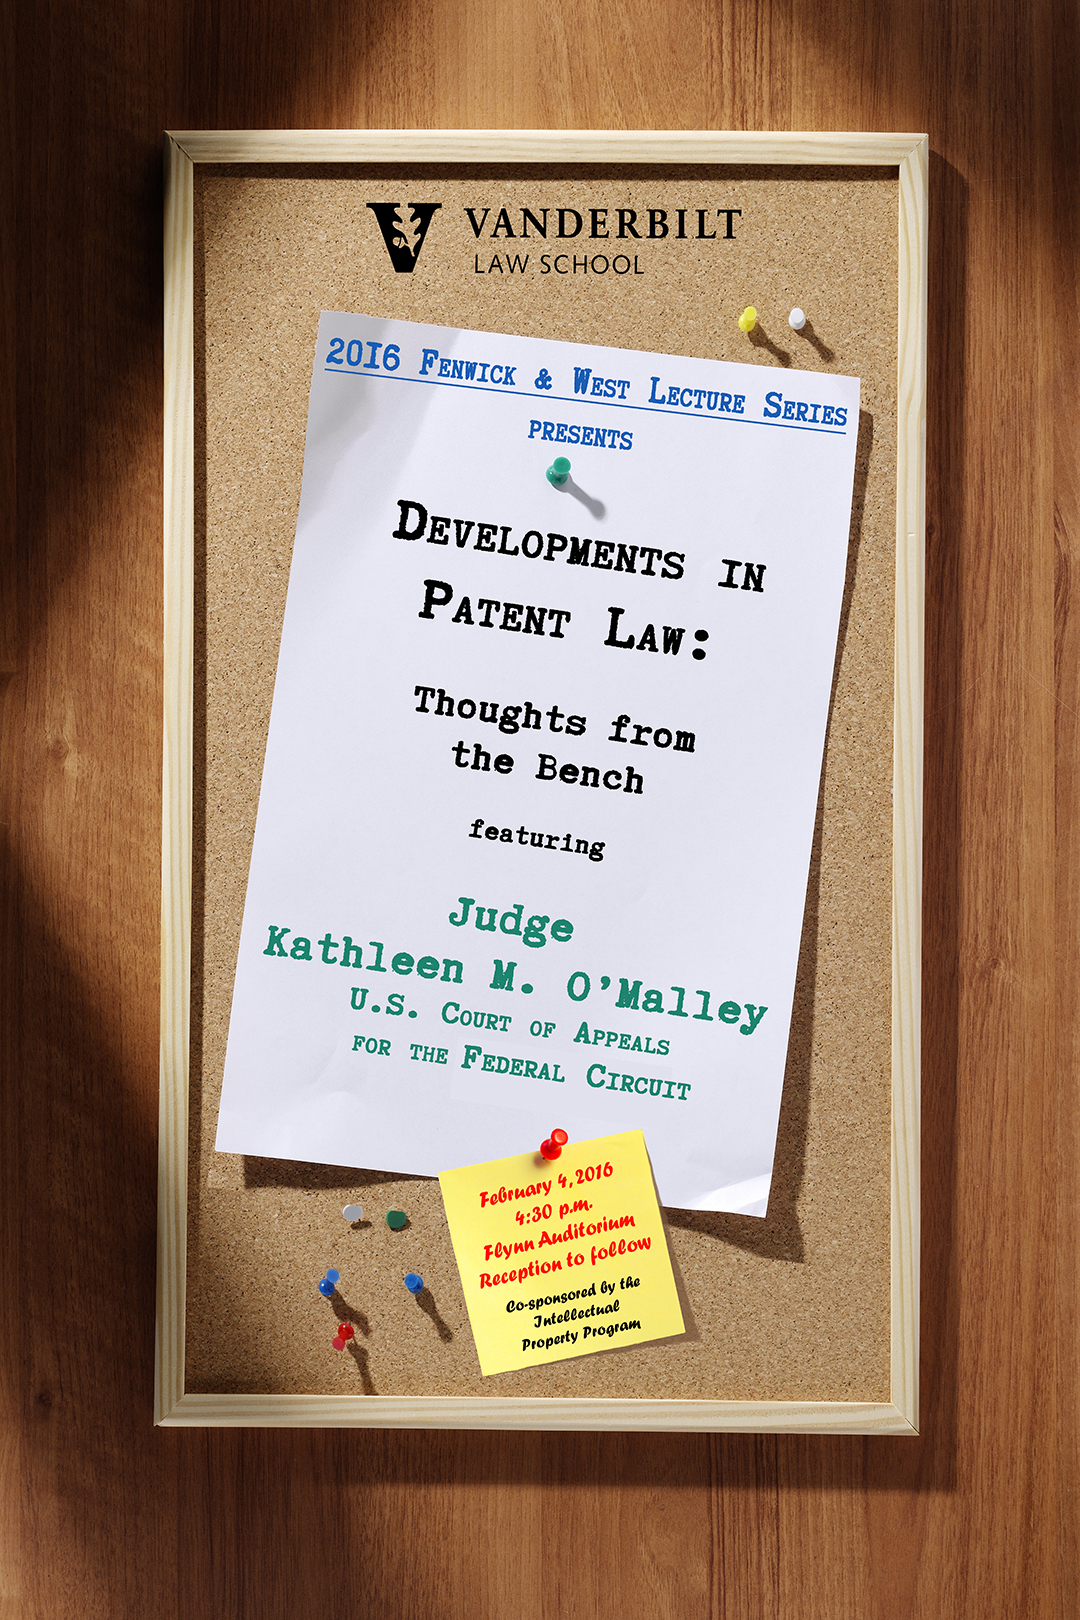 Fenwick & West Lecture: Developments in Patent Law: Thoughts from the Bench